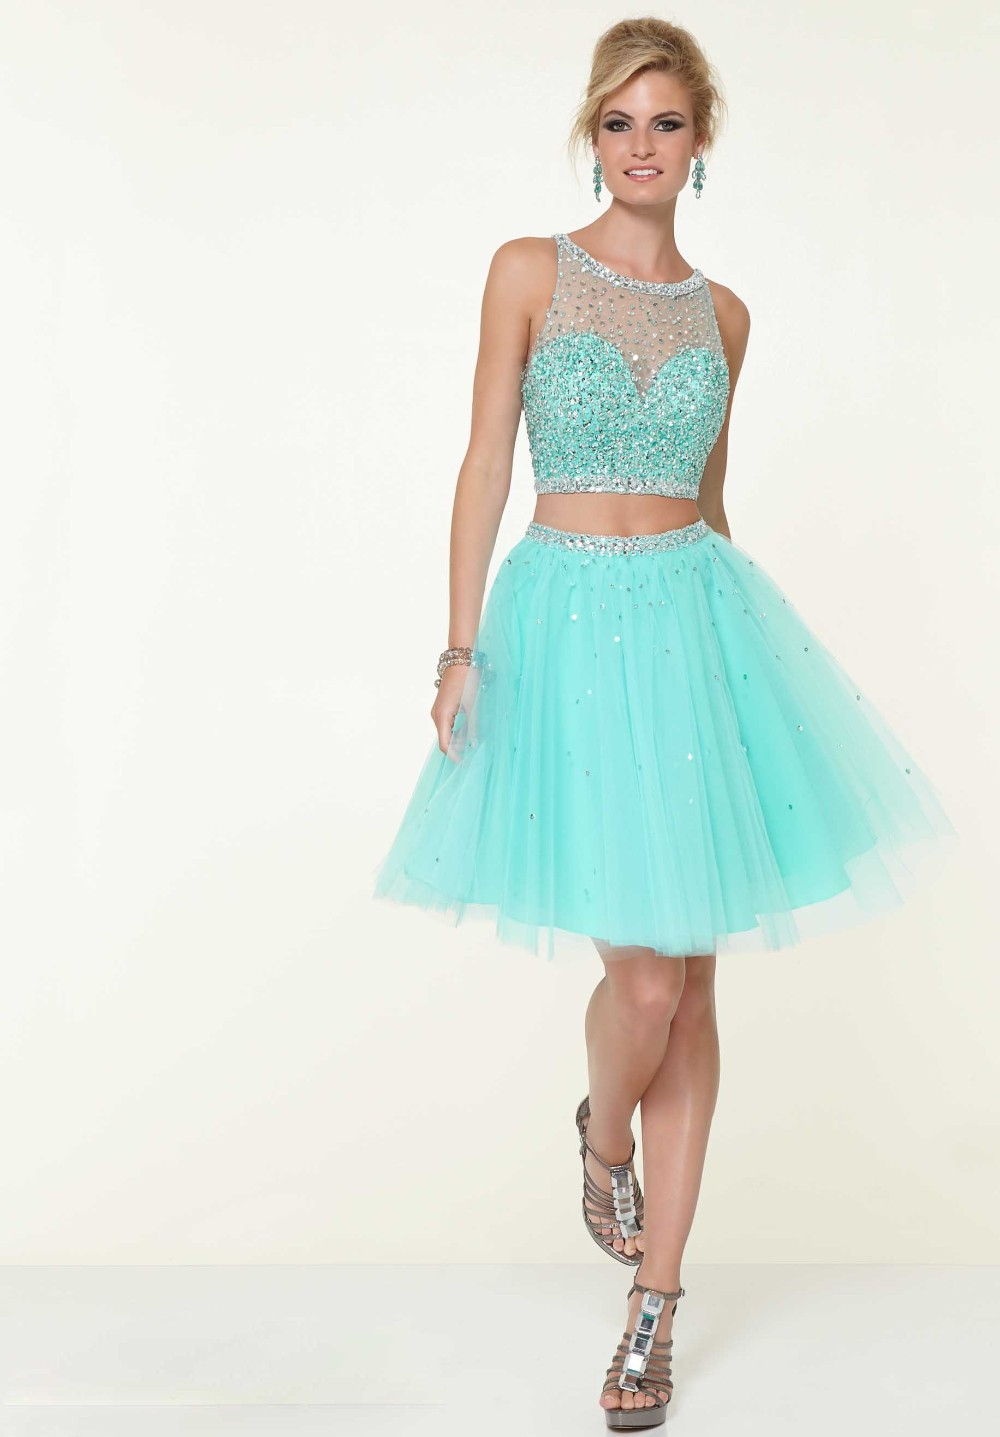 Short-Dress Rainbow Renaissance-Gowns Crystal Blue Nude Vestidos Formales